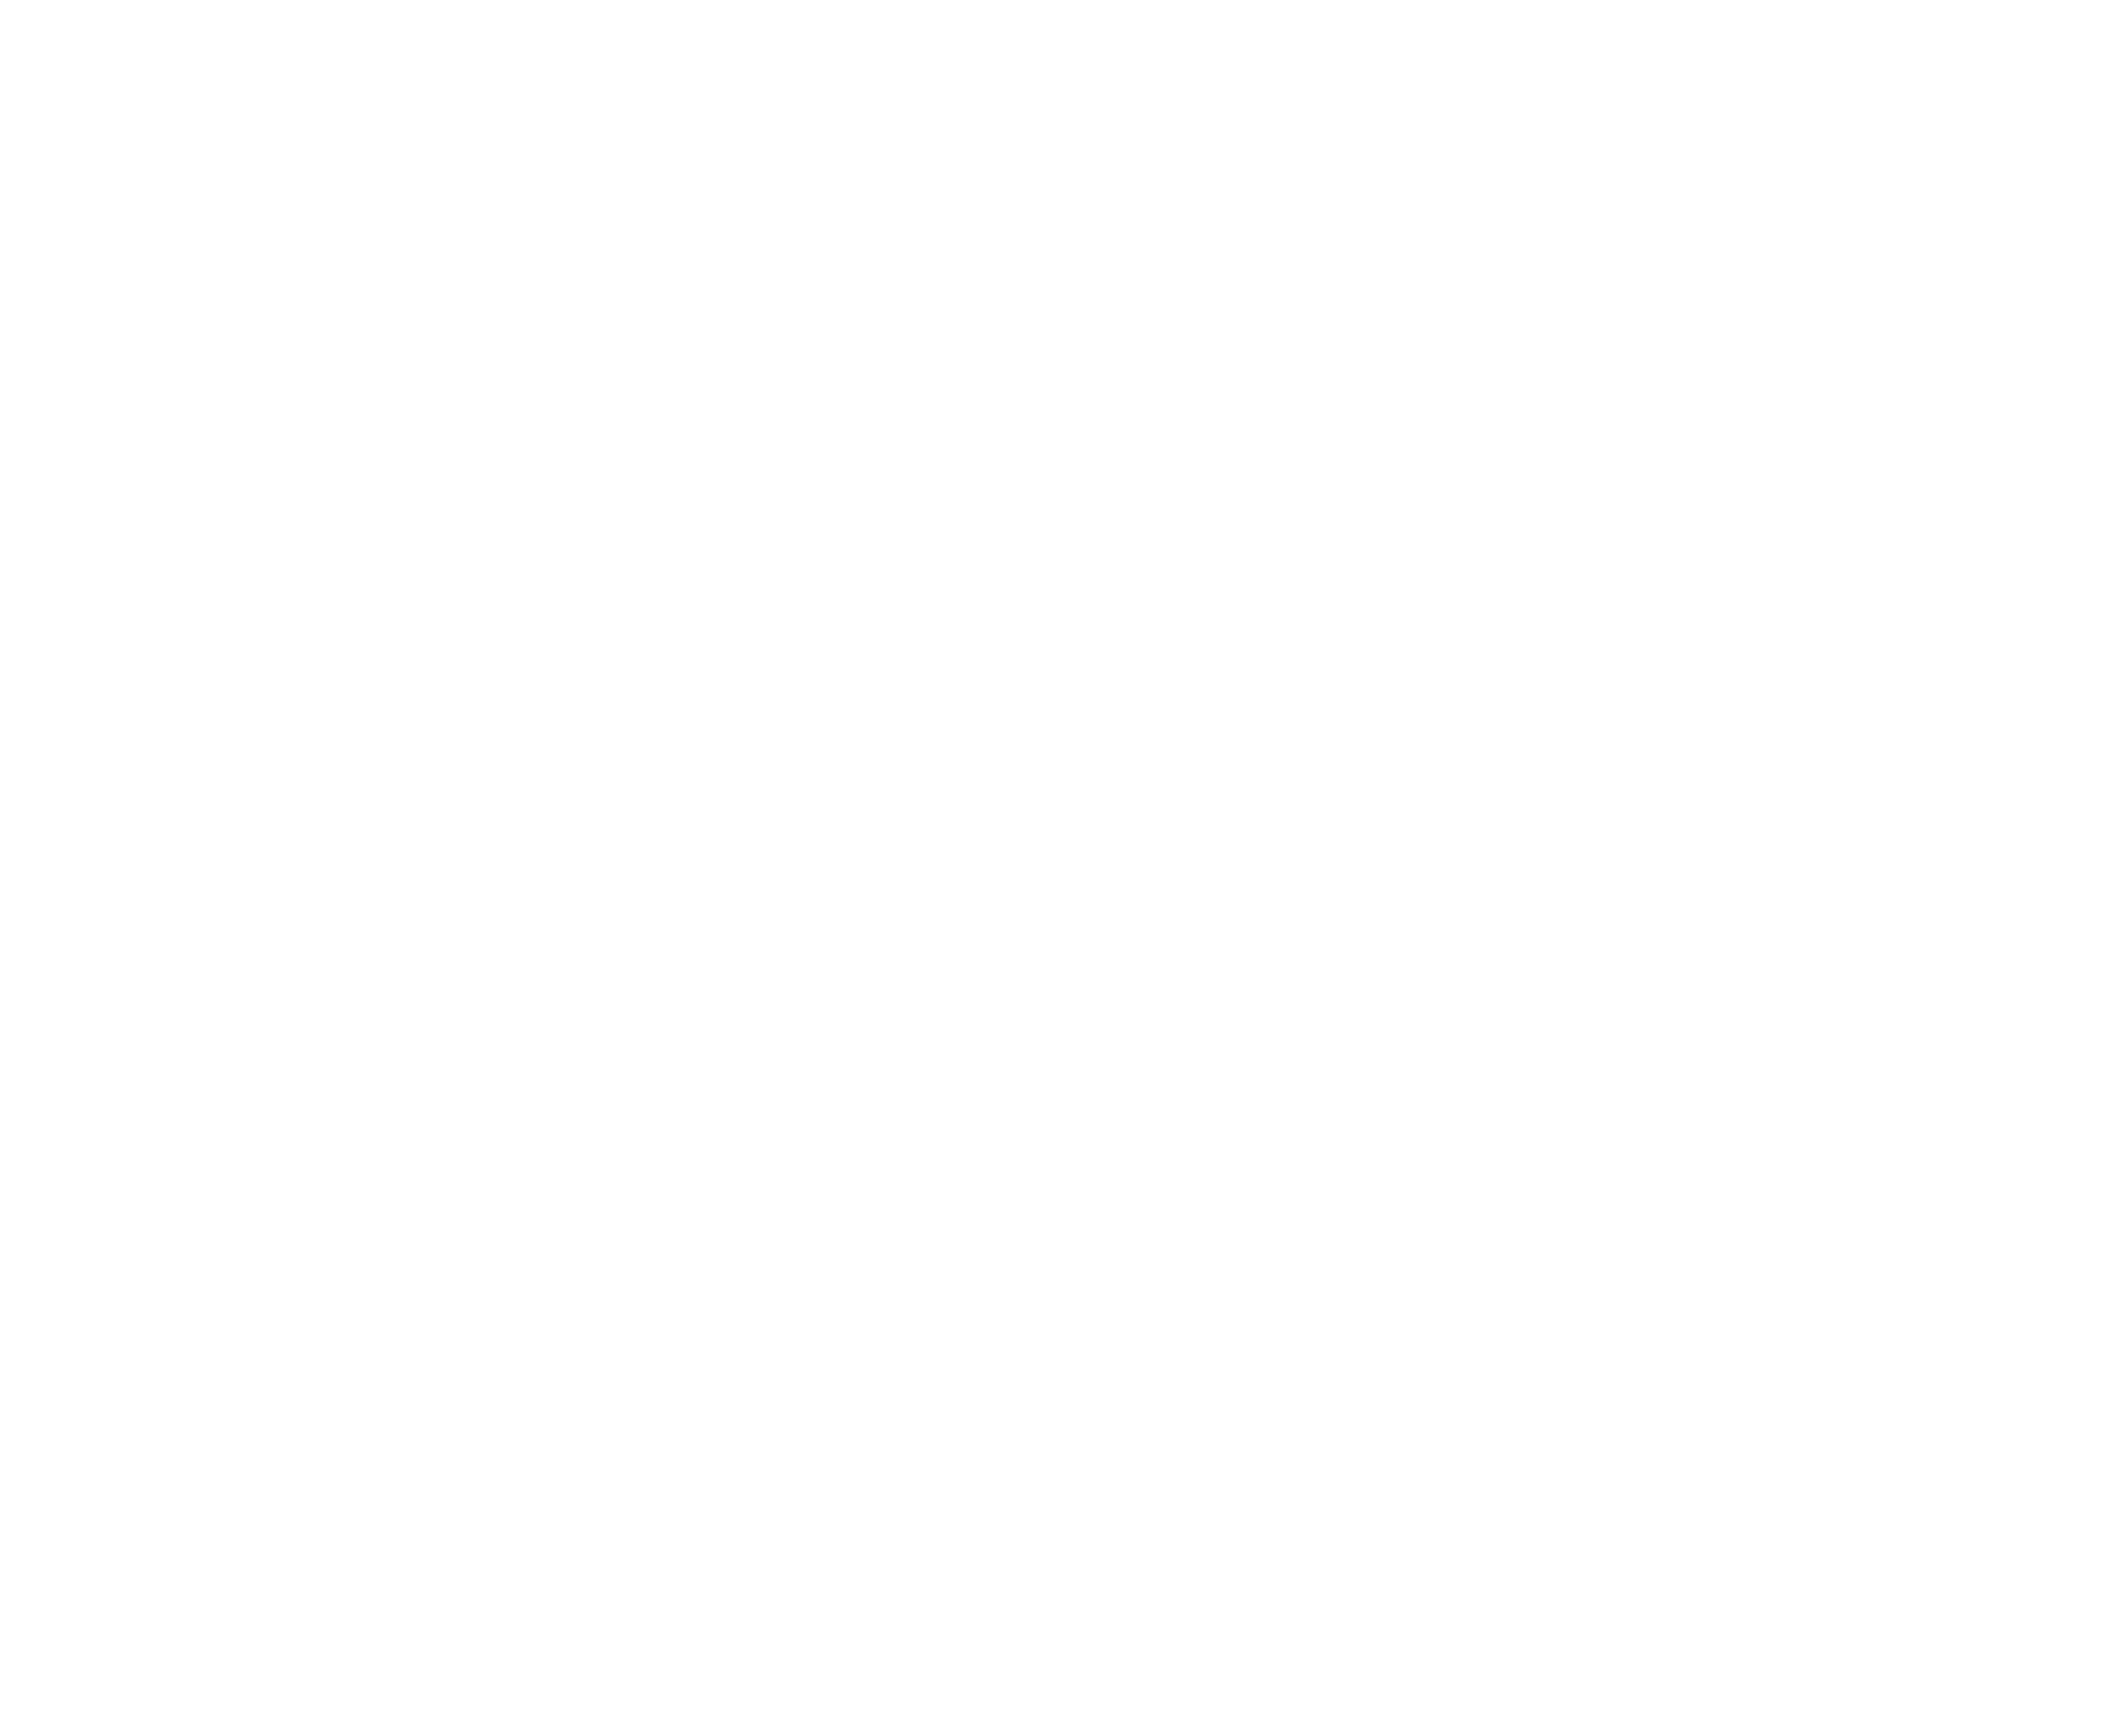 Holiday | Audium | Audiovisuele producties en verhuur op broadcastmarkt Ranst